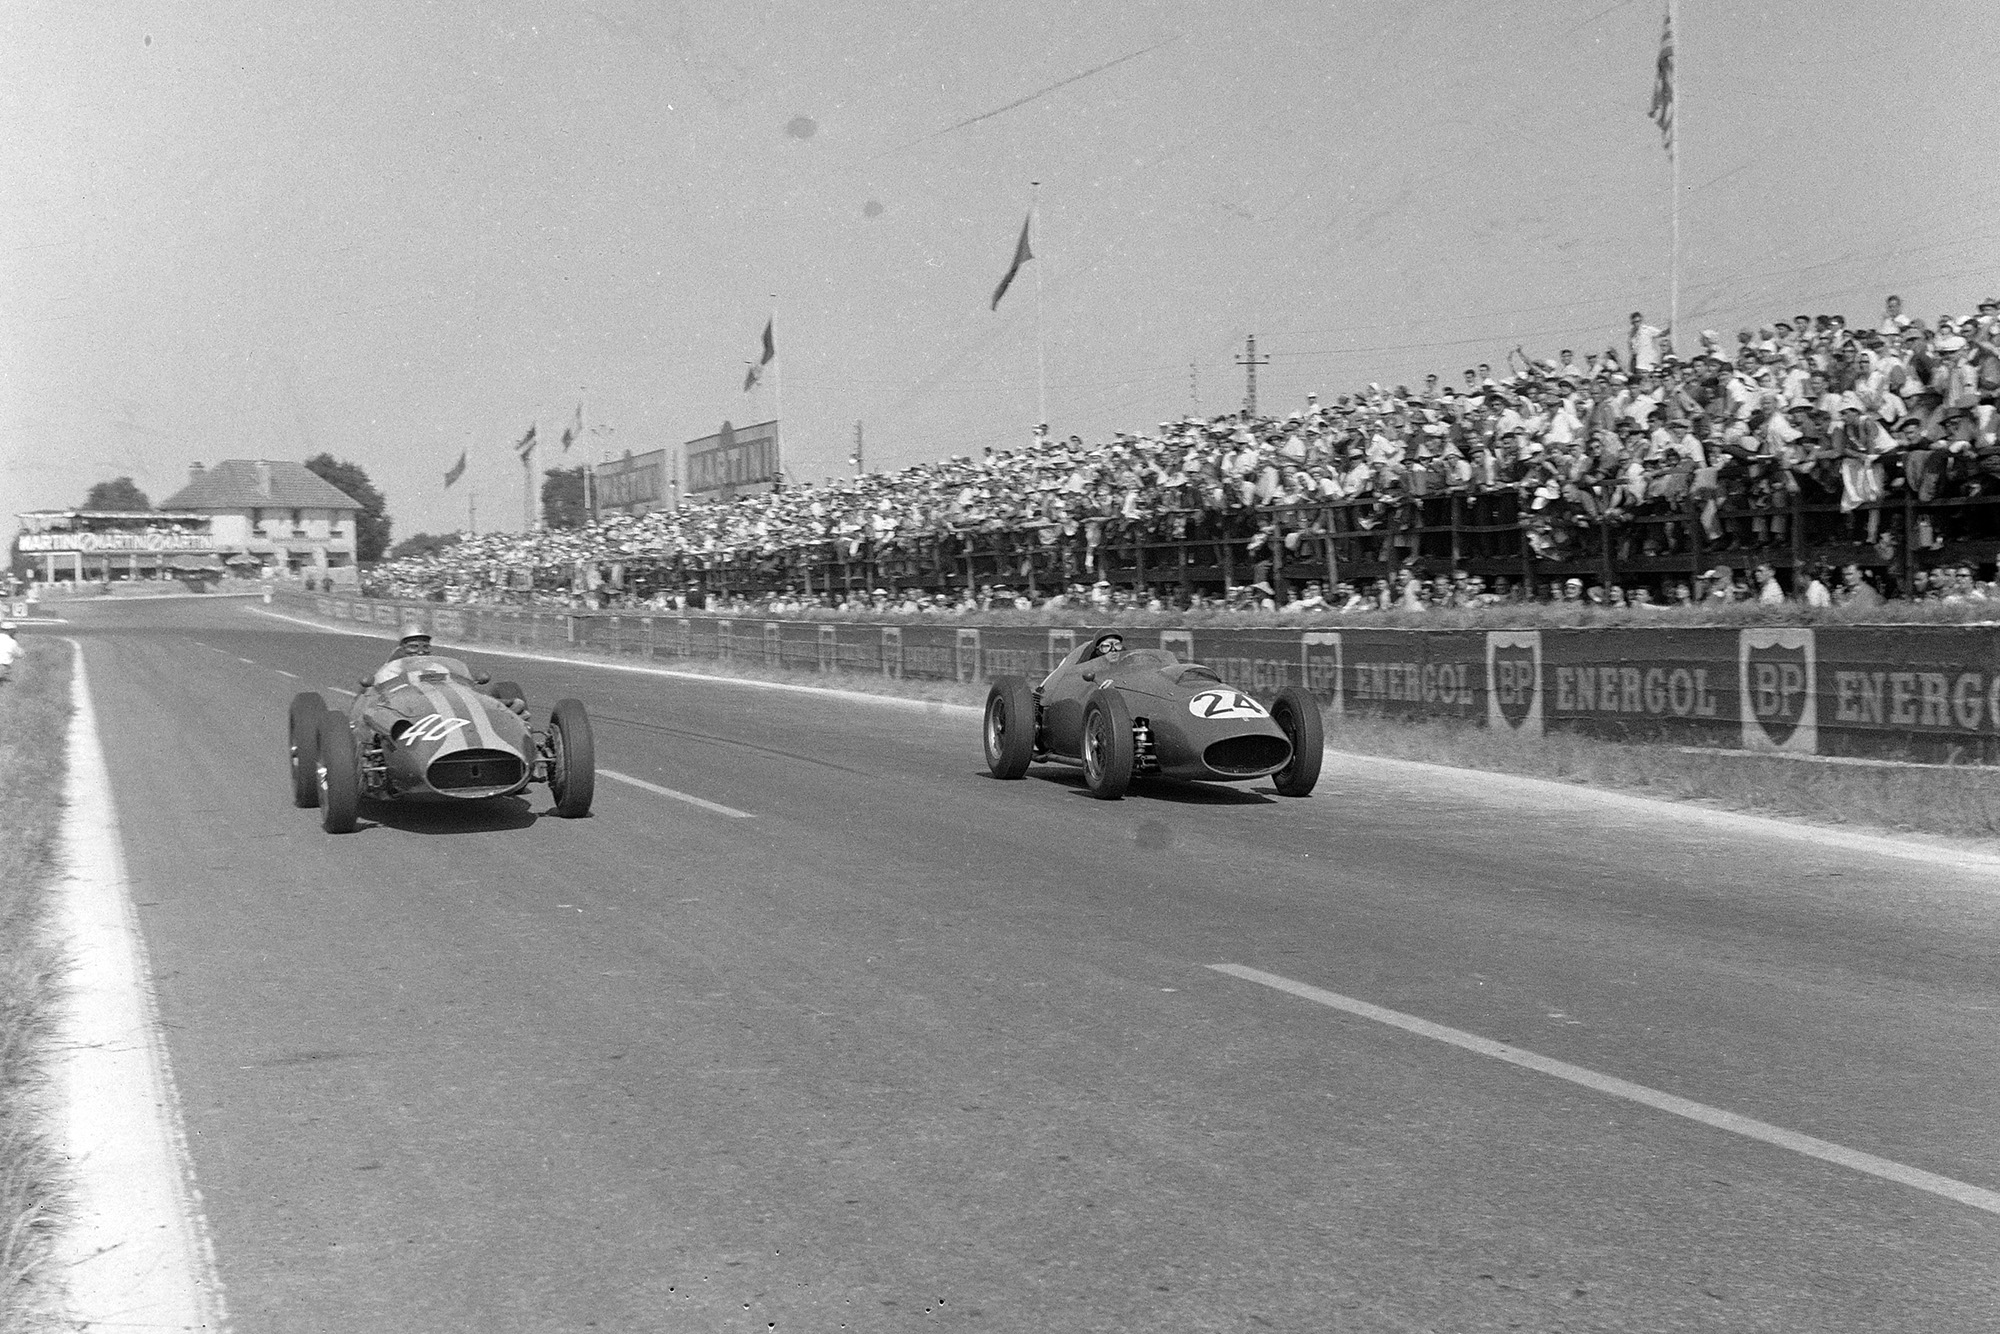 Tony Brooks battles with Giorgio Scarlatti during the 1959 French Grand Prix